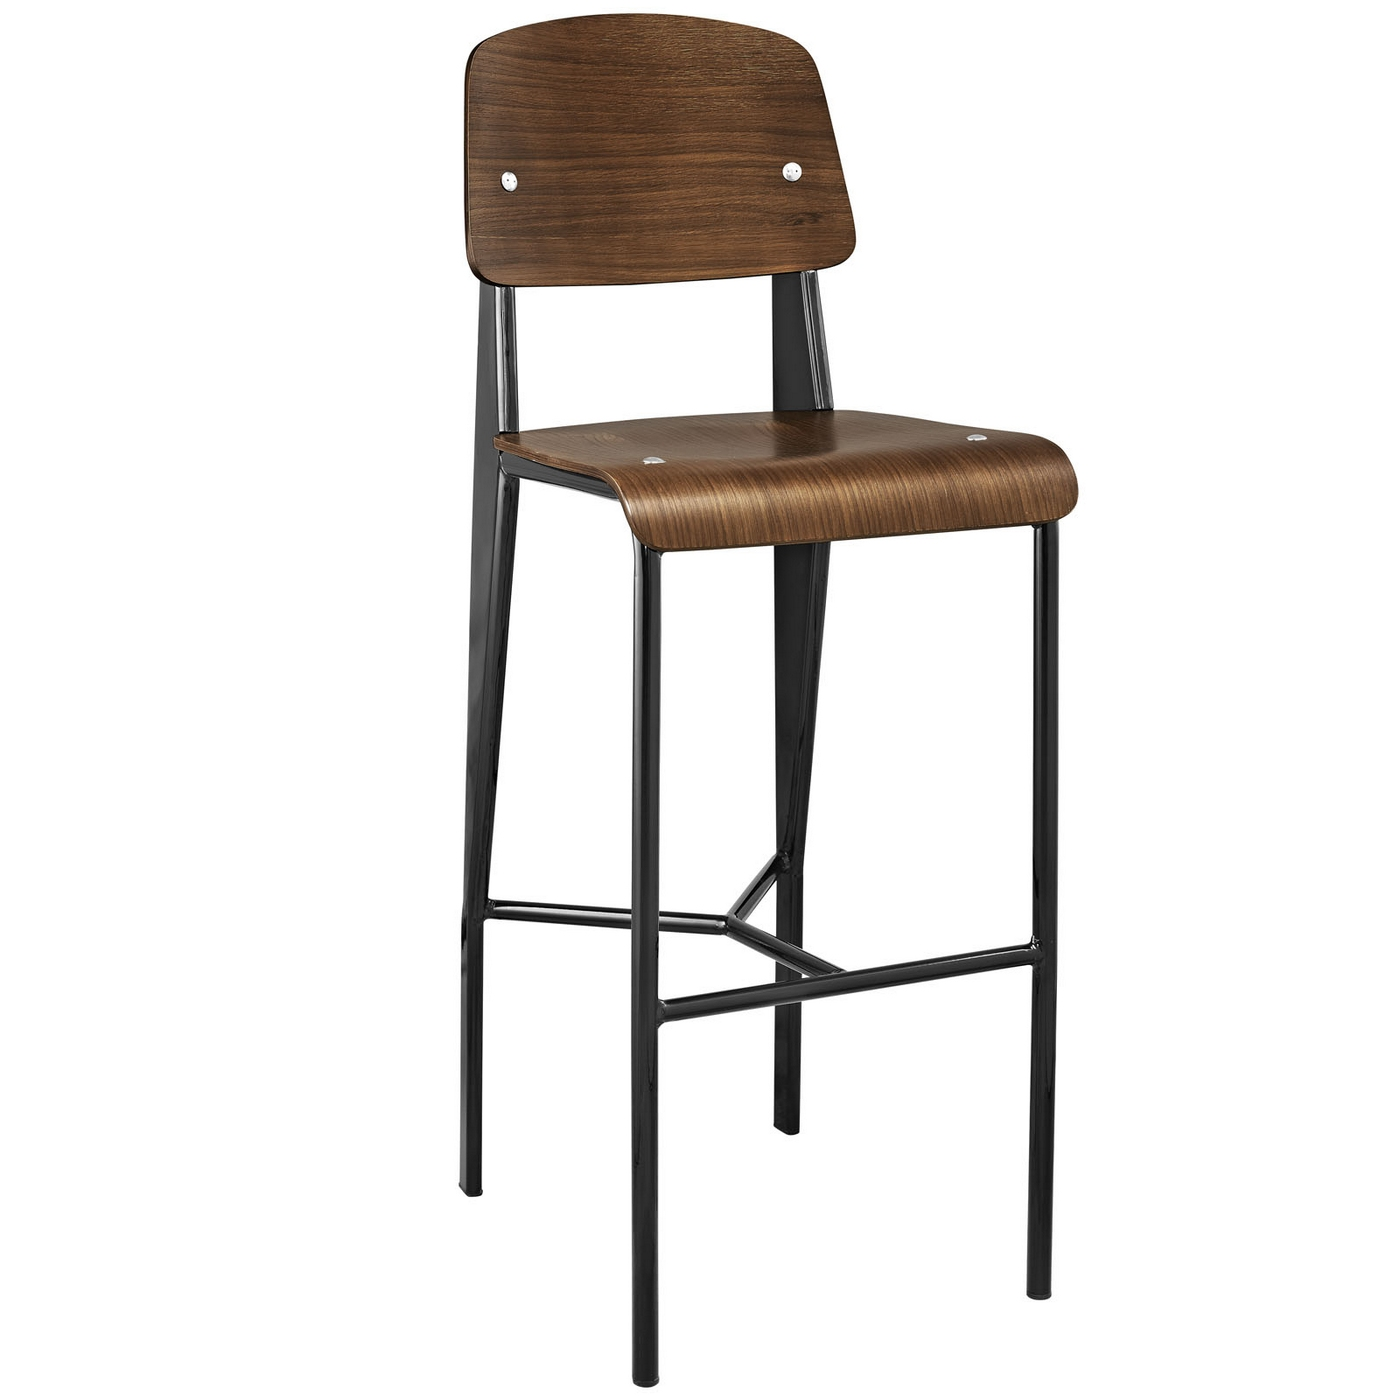 Cabin Contemporary Bentwood Back Bar Stool With Metal